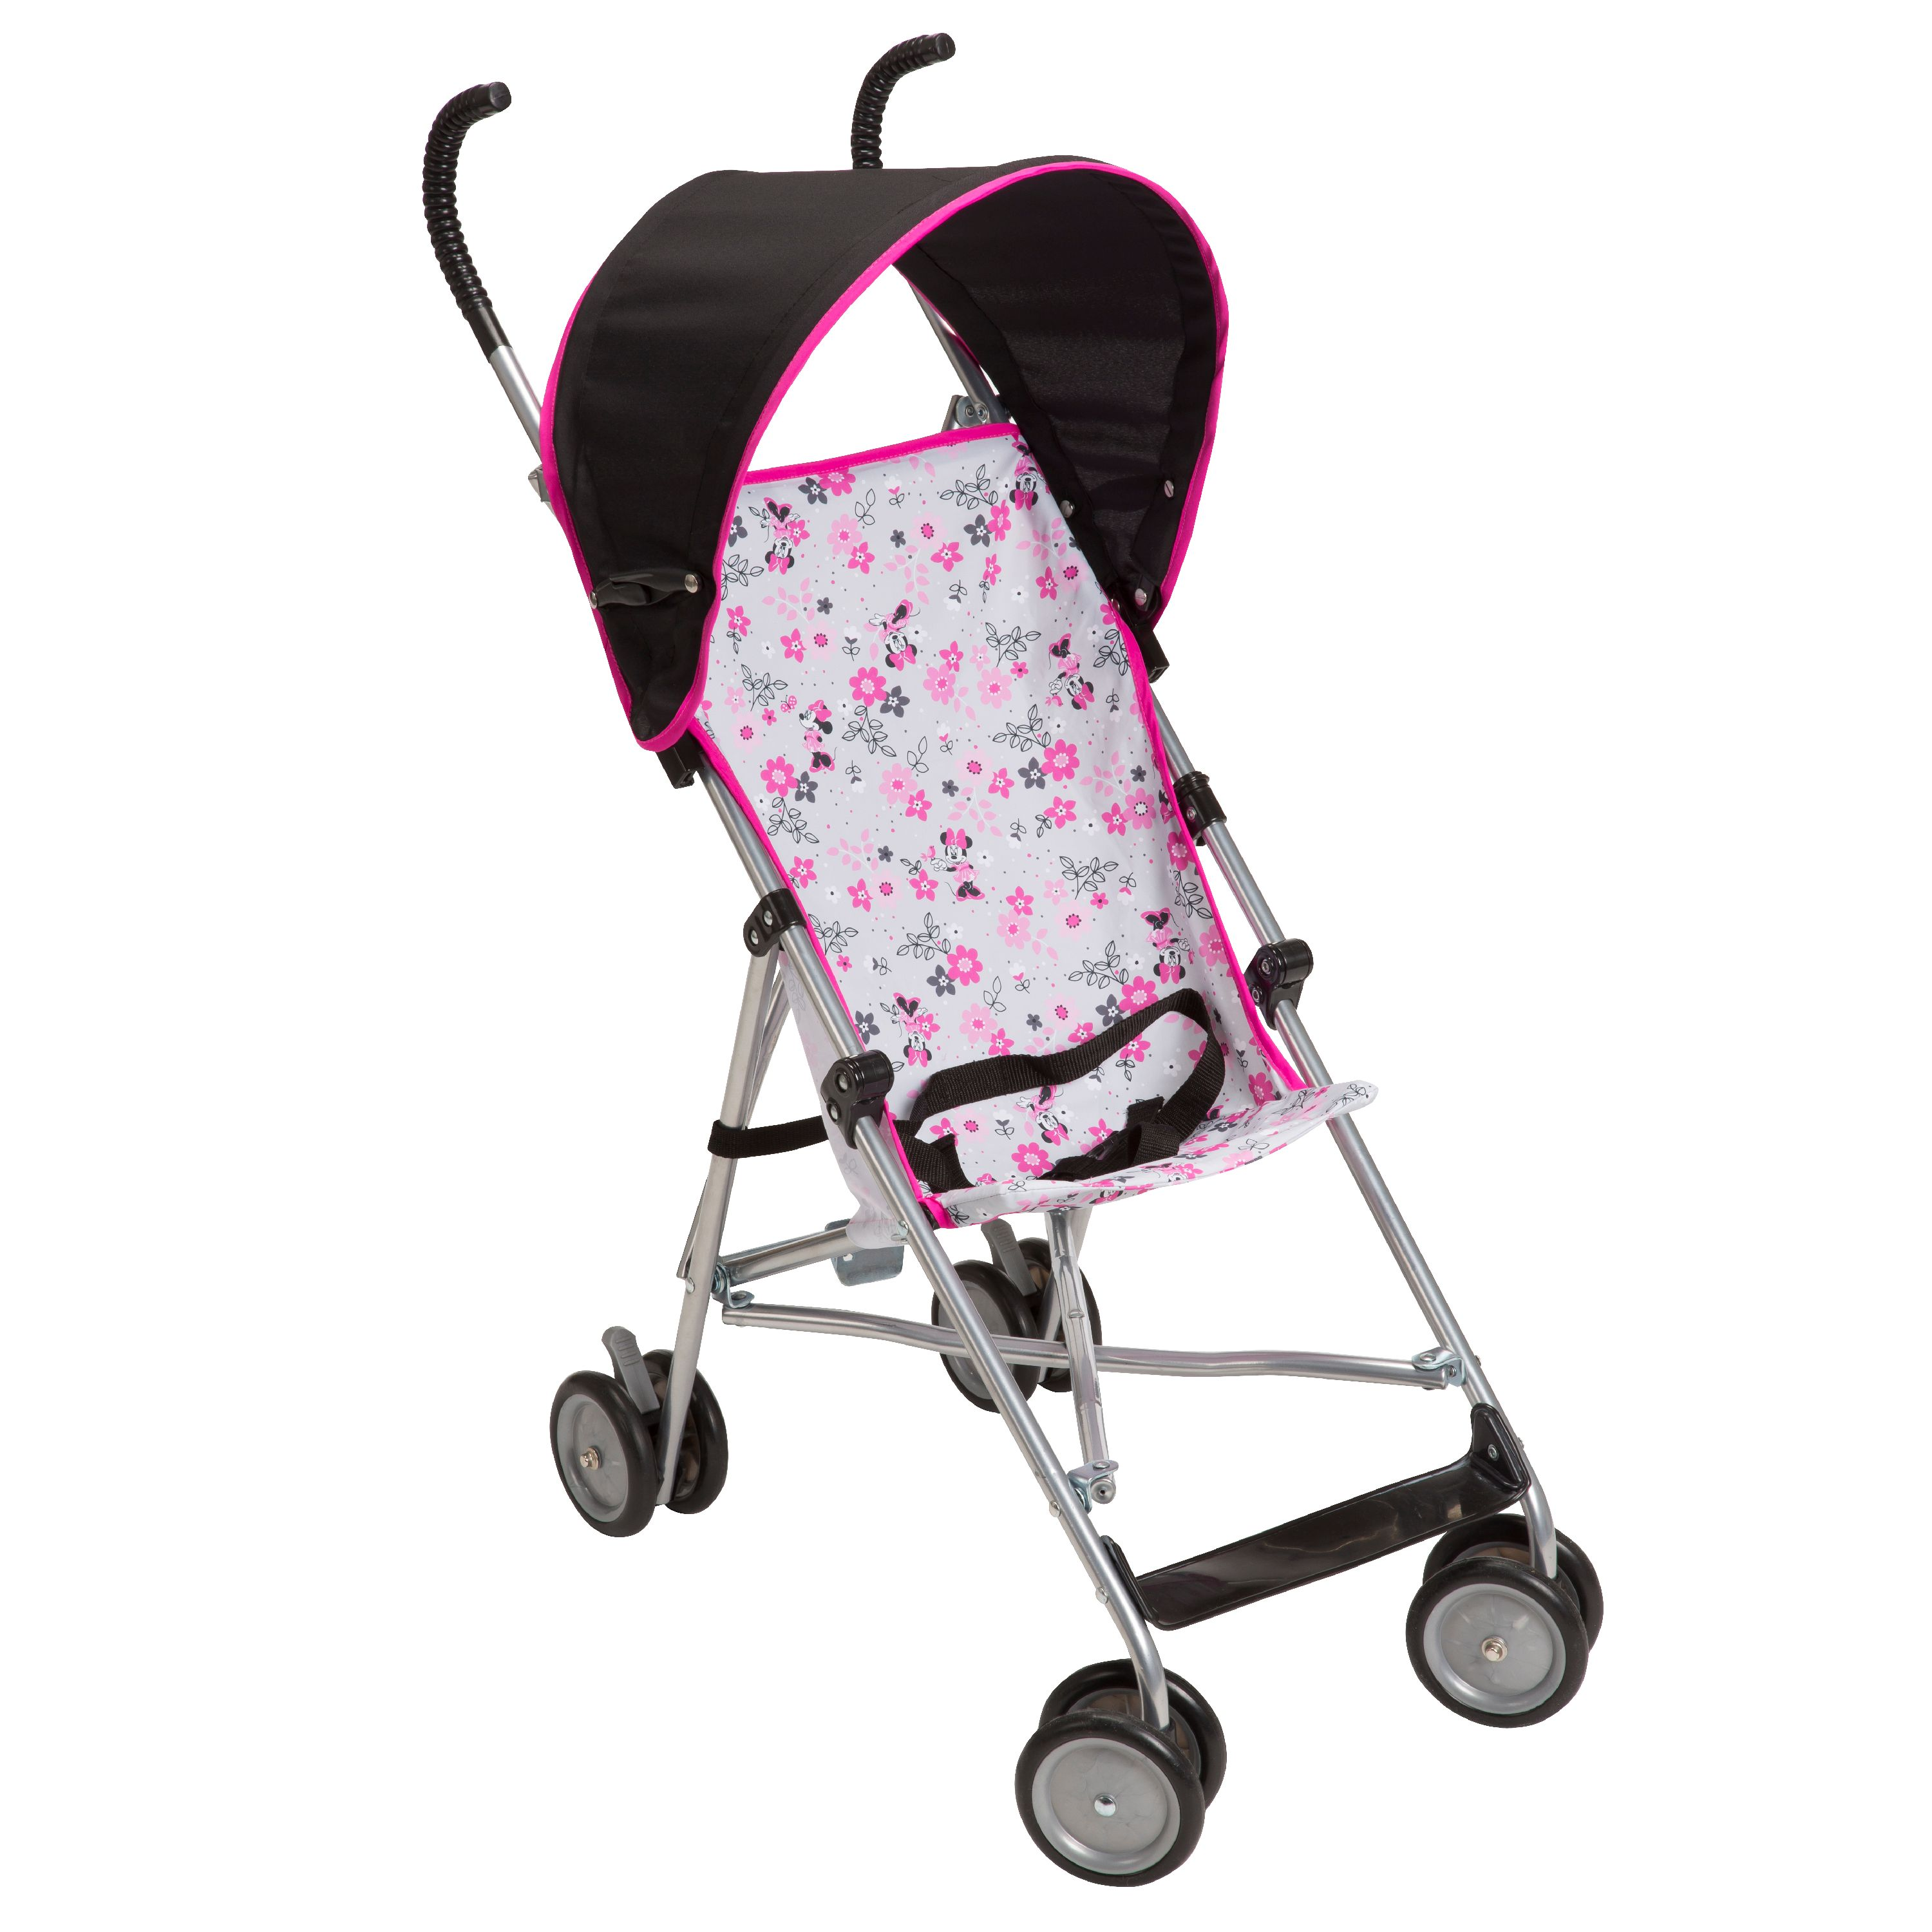 Disney Baby Umbrella Stroller with Canopy, Minnie Garden Delight